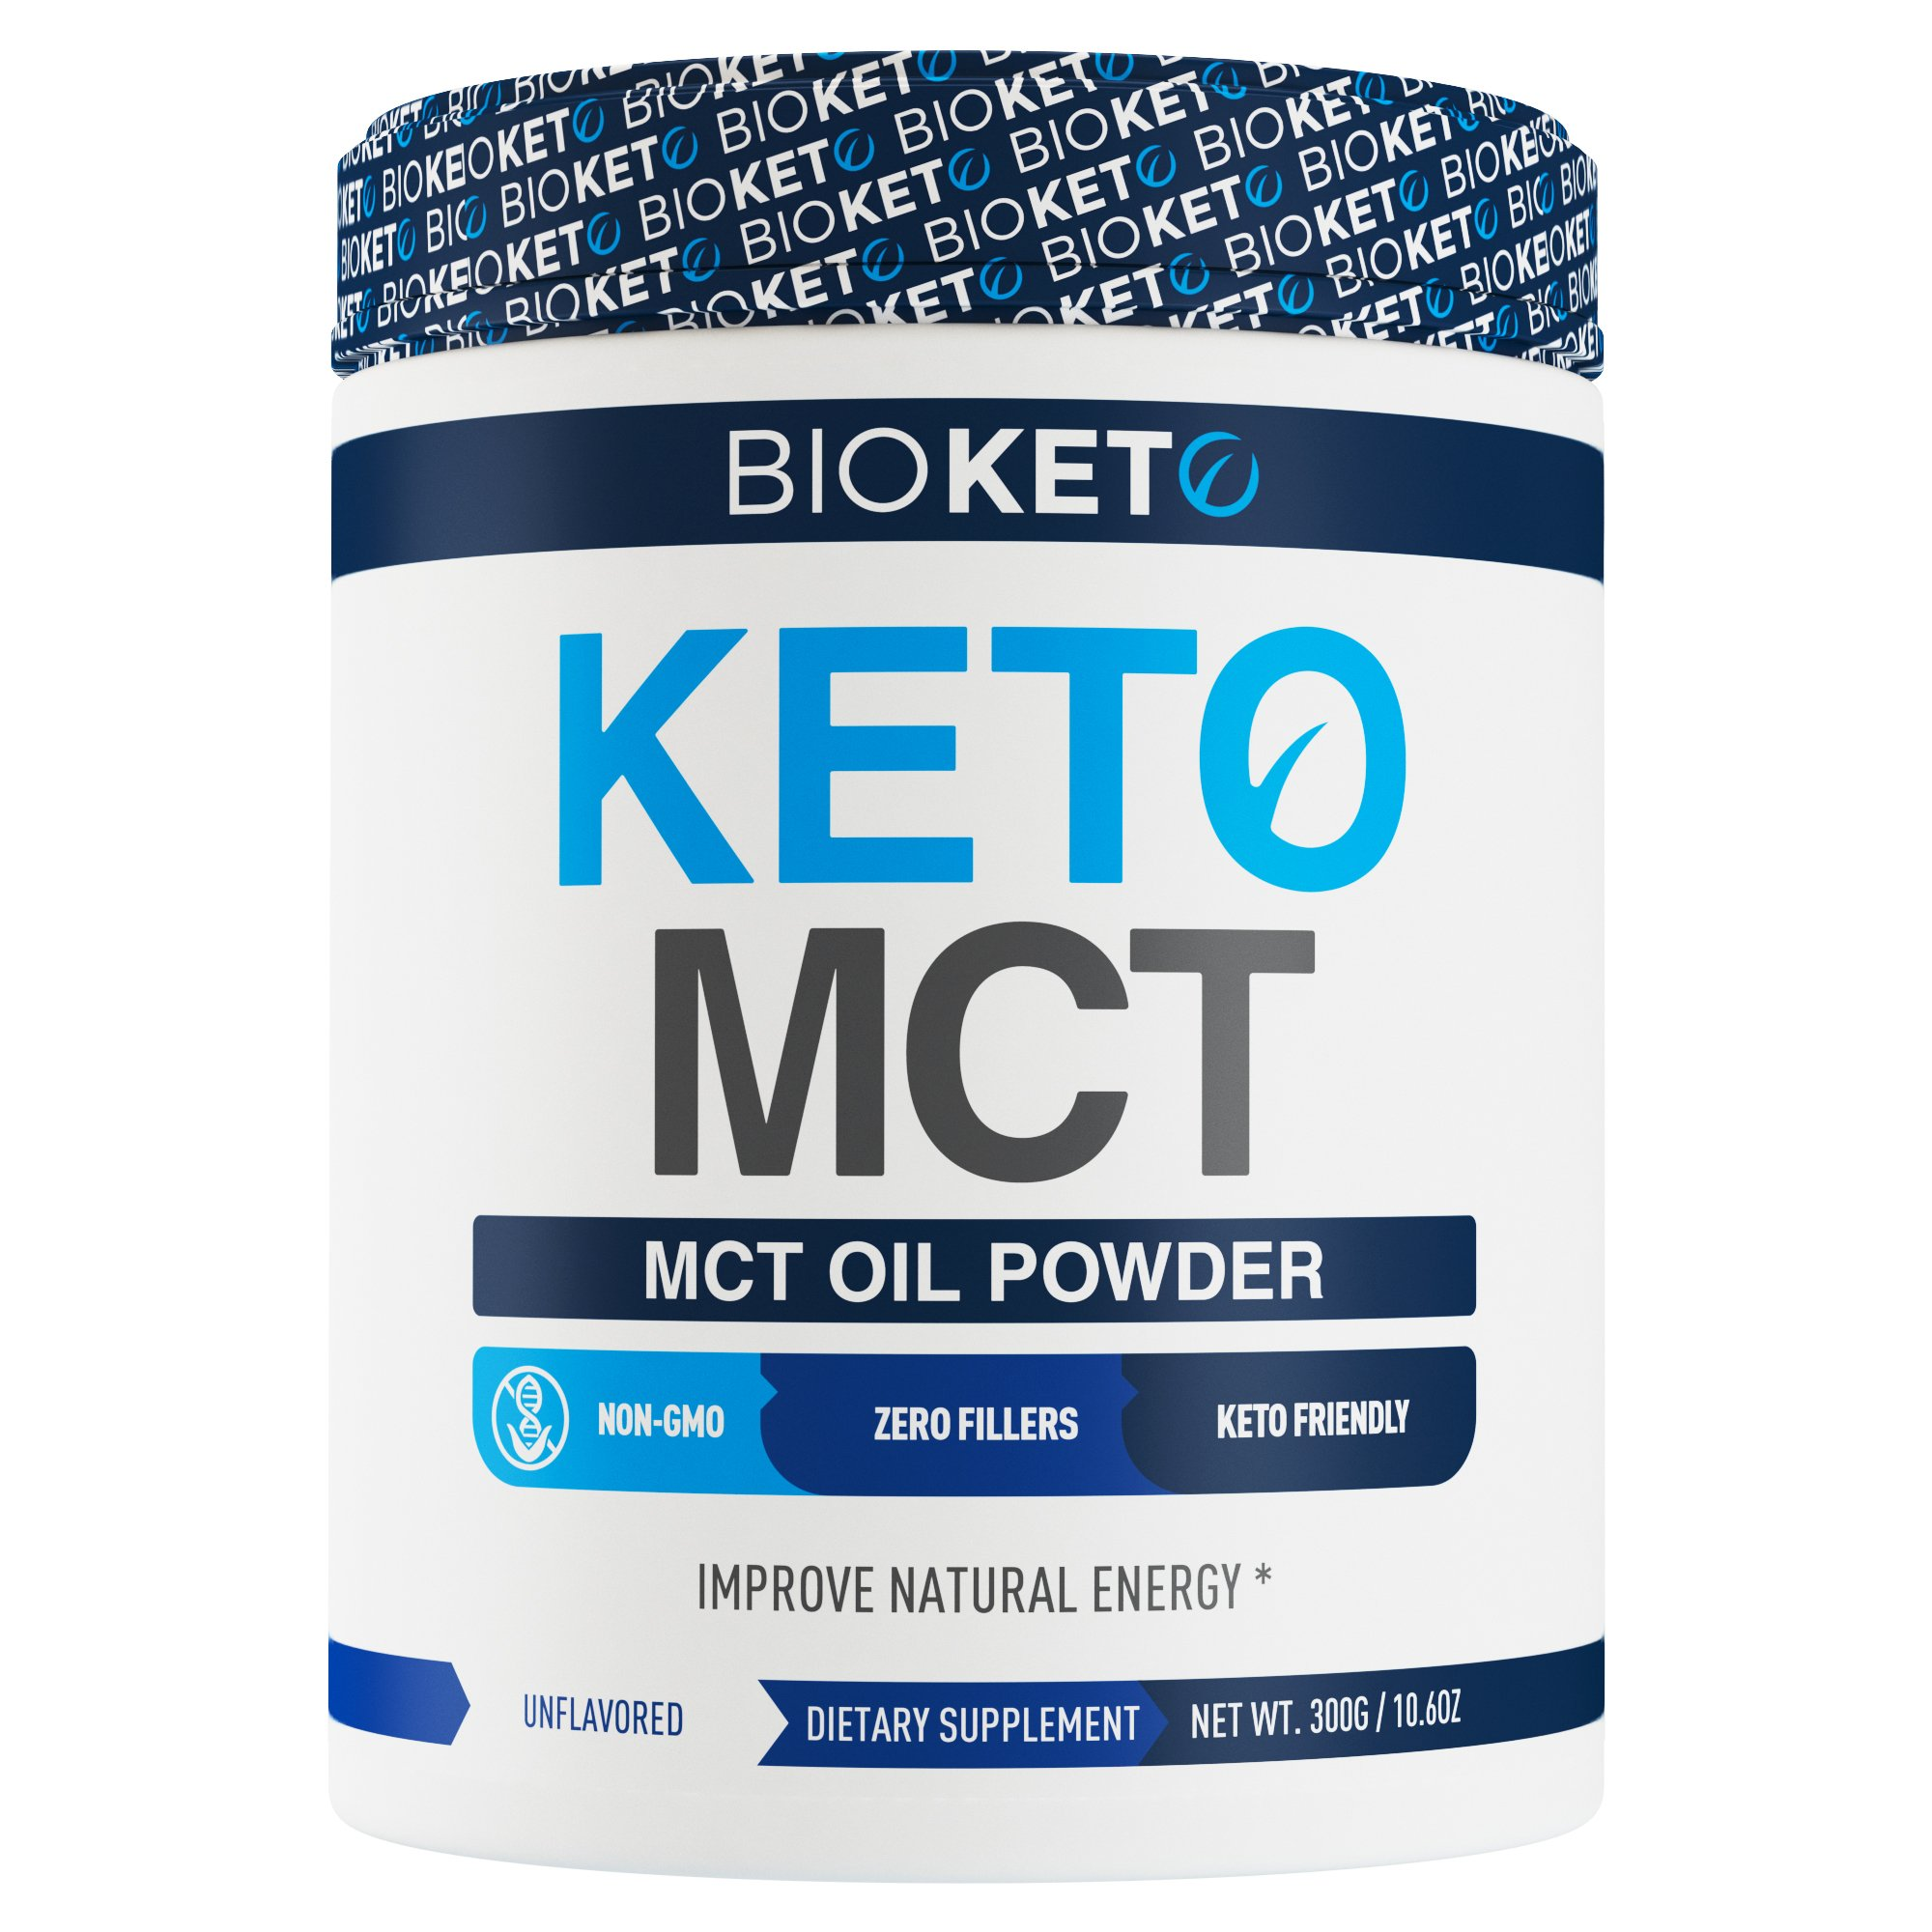 Bio Keto MCT Powder